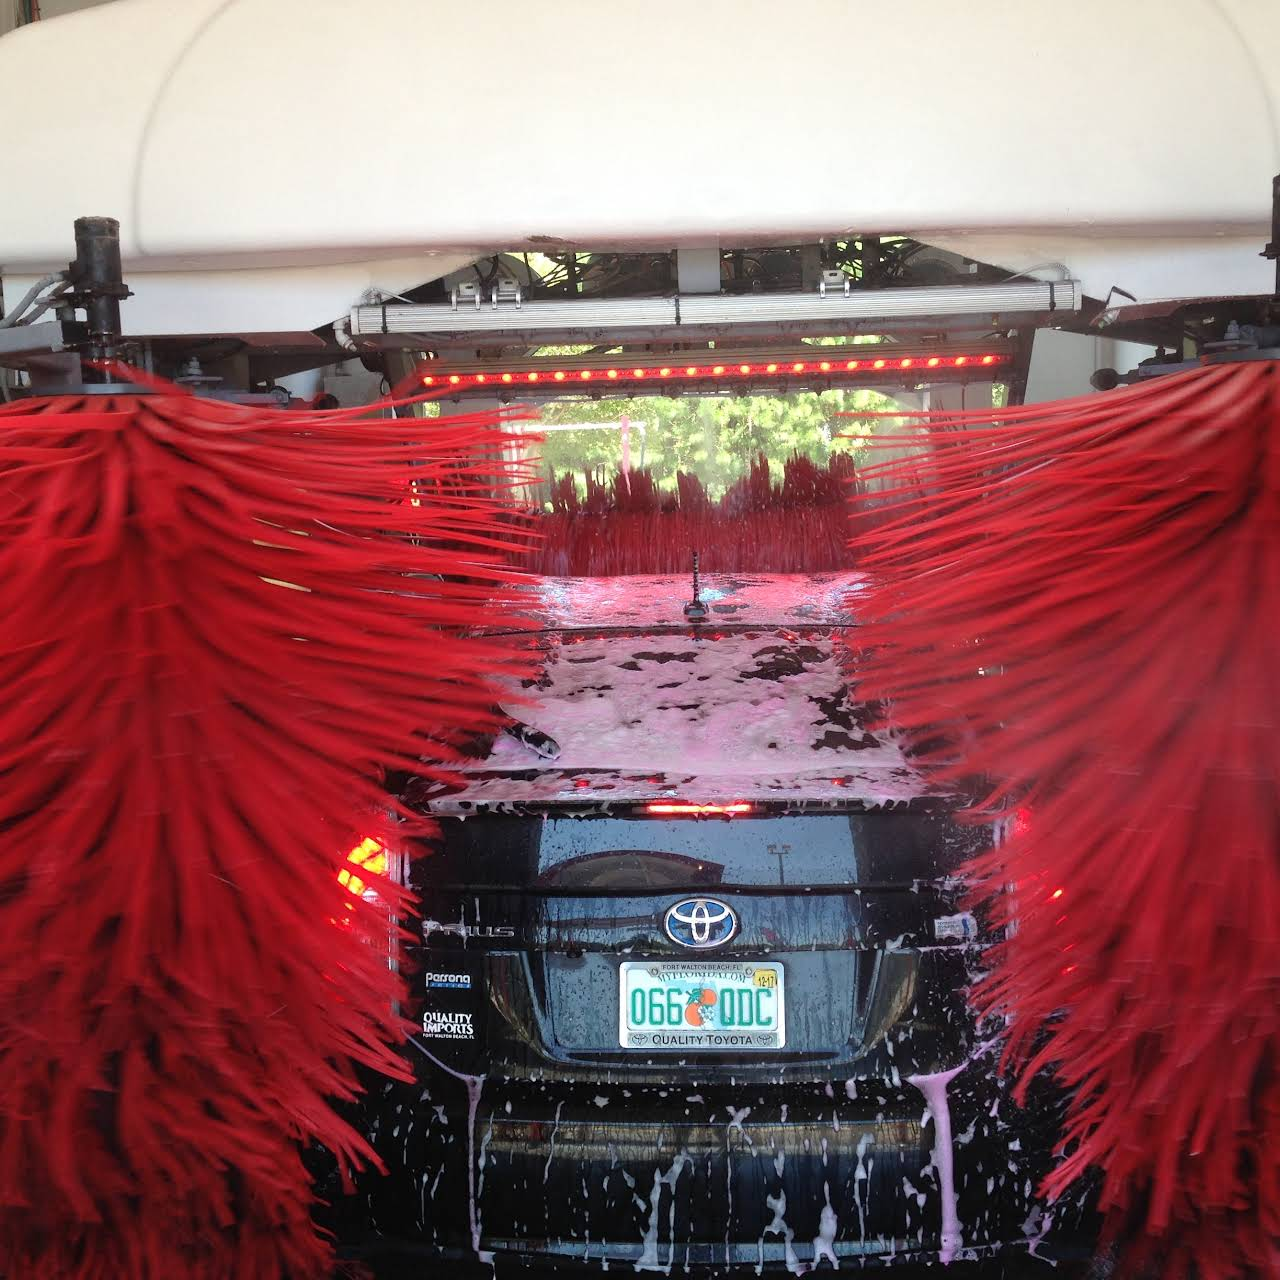 Red eye car wash car wash in destin now that is a real car wash solutioingenieria Images